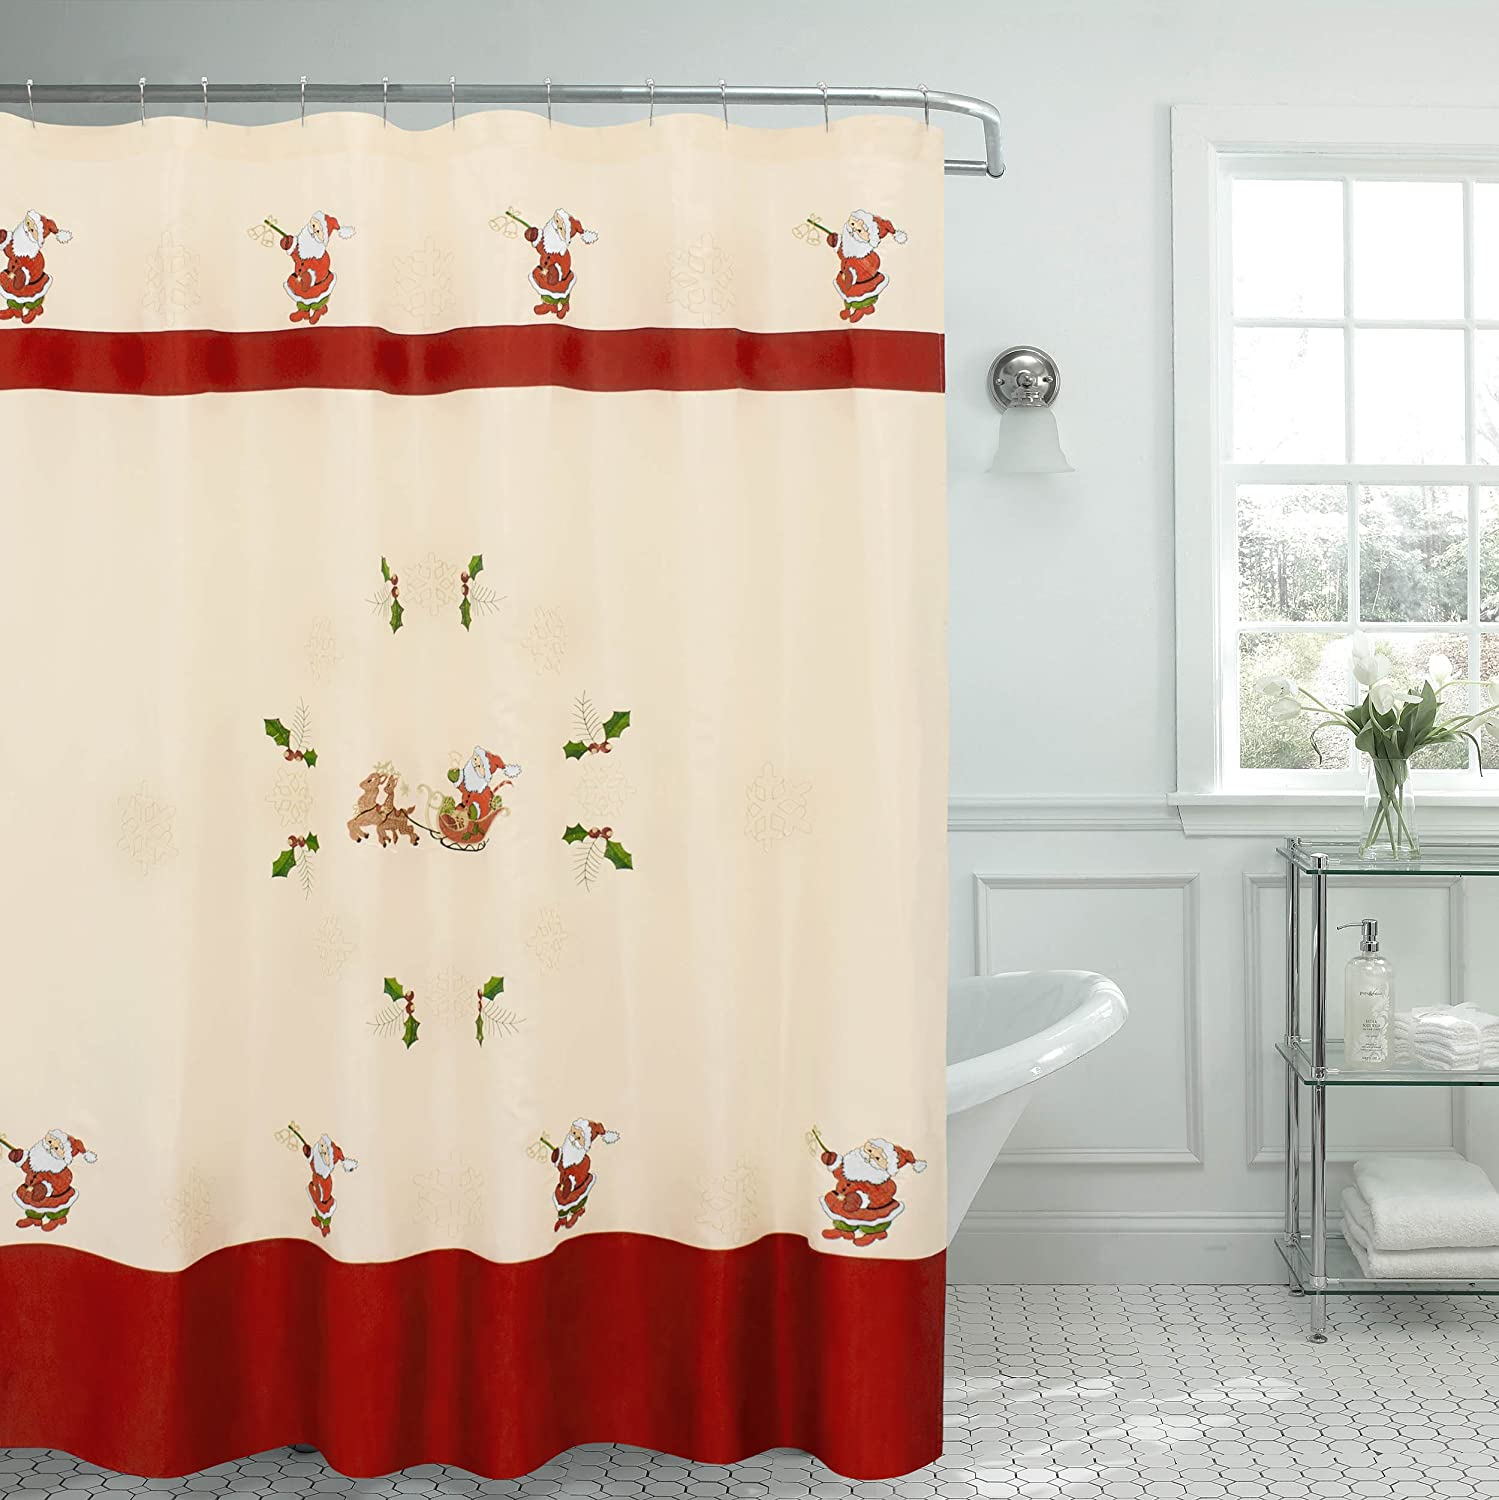 Amazon.com: Creative Home Ideas Santa Embroidered Shower Curtain, 70 x 72, Beige/White/Red/Green/Gold: Home & Kitchen